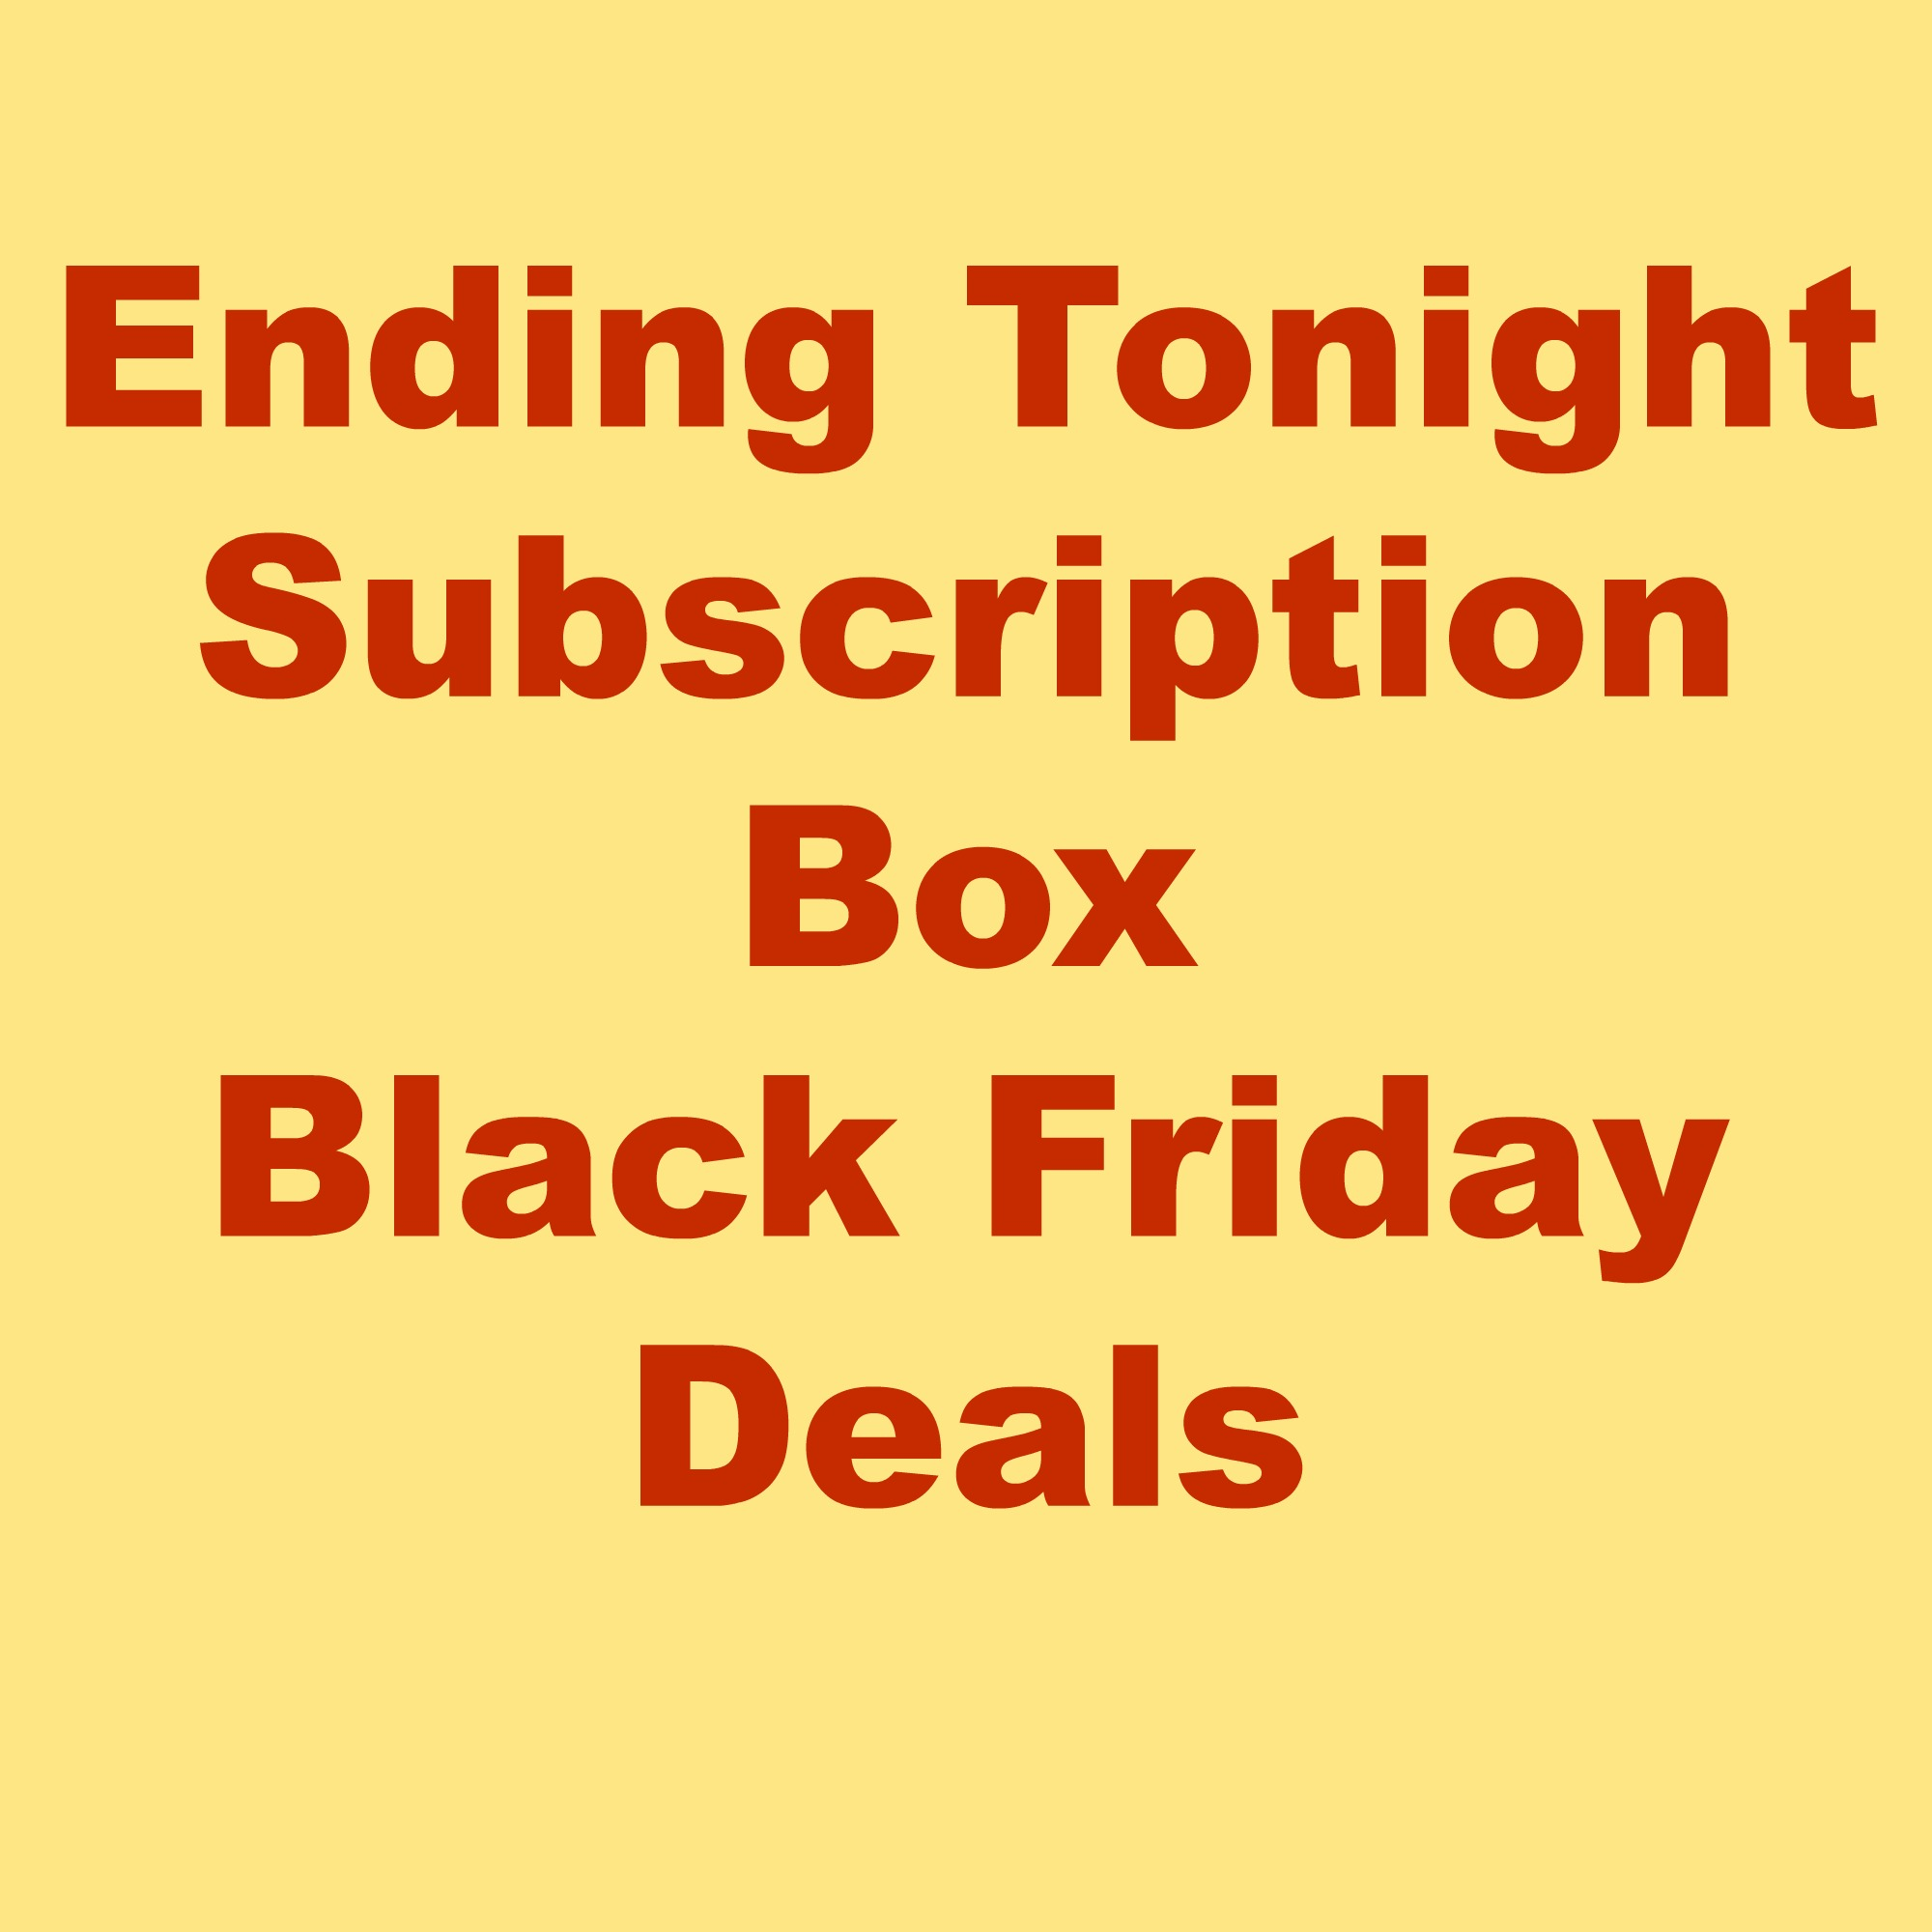 Ending Tonight: Subscription Box Black Friday Deals